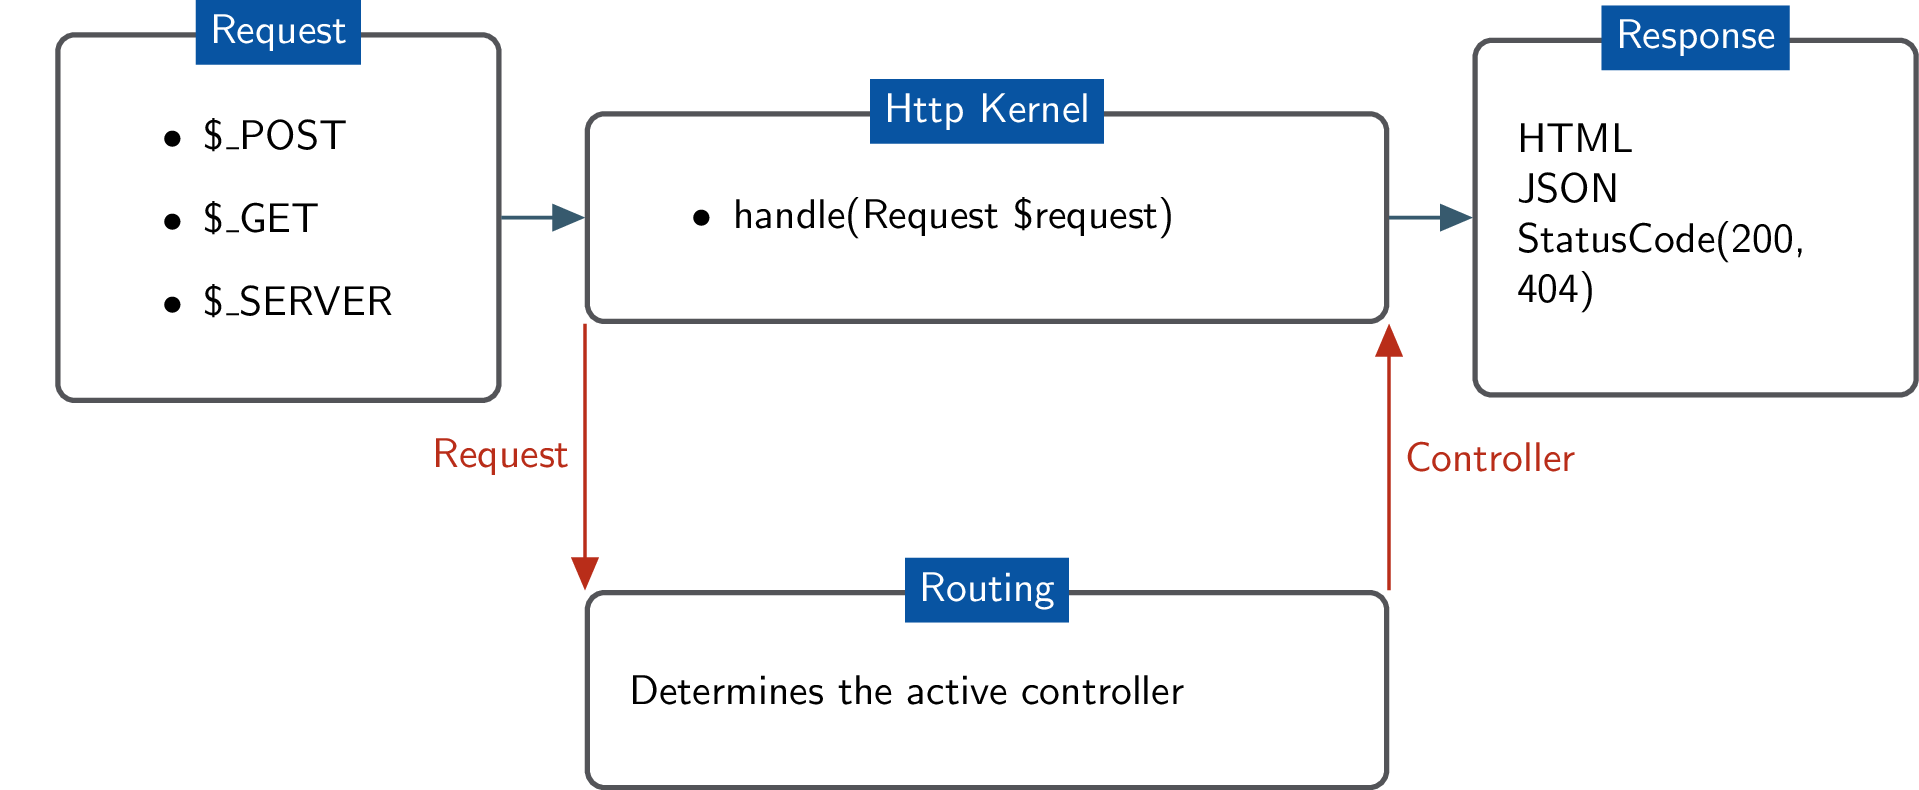 A flowchart on how a routing system sends a request to HTTP kernel